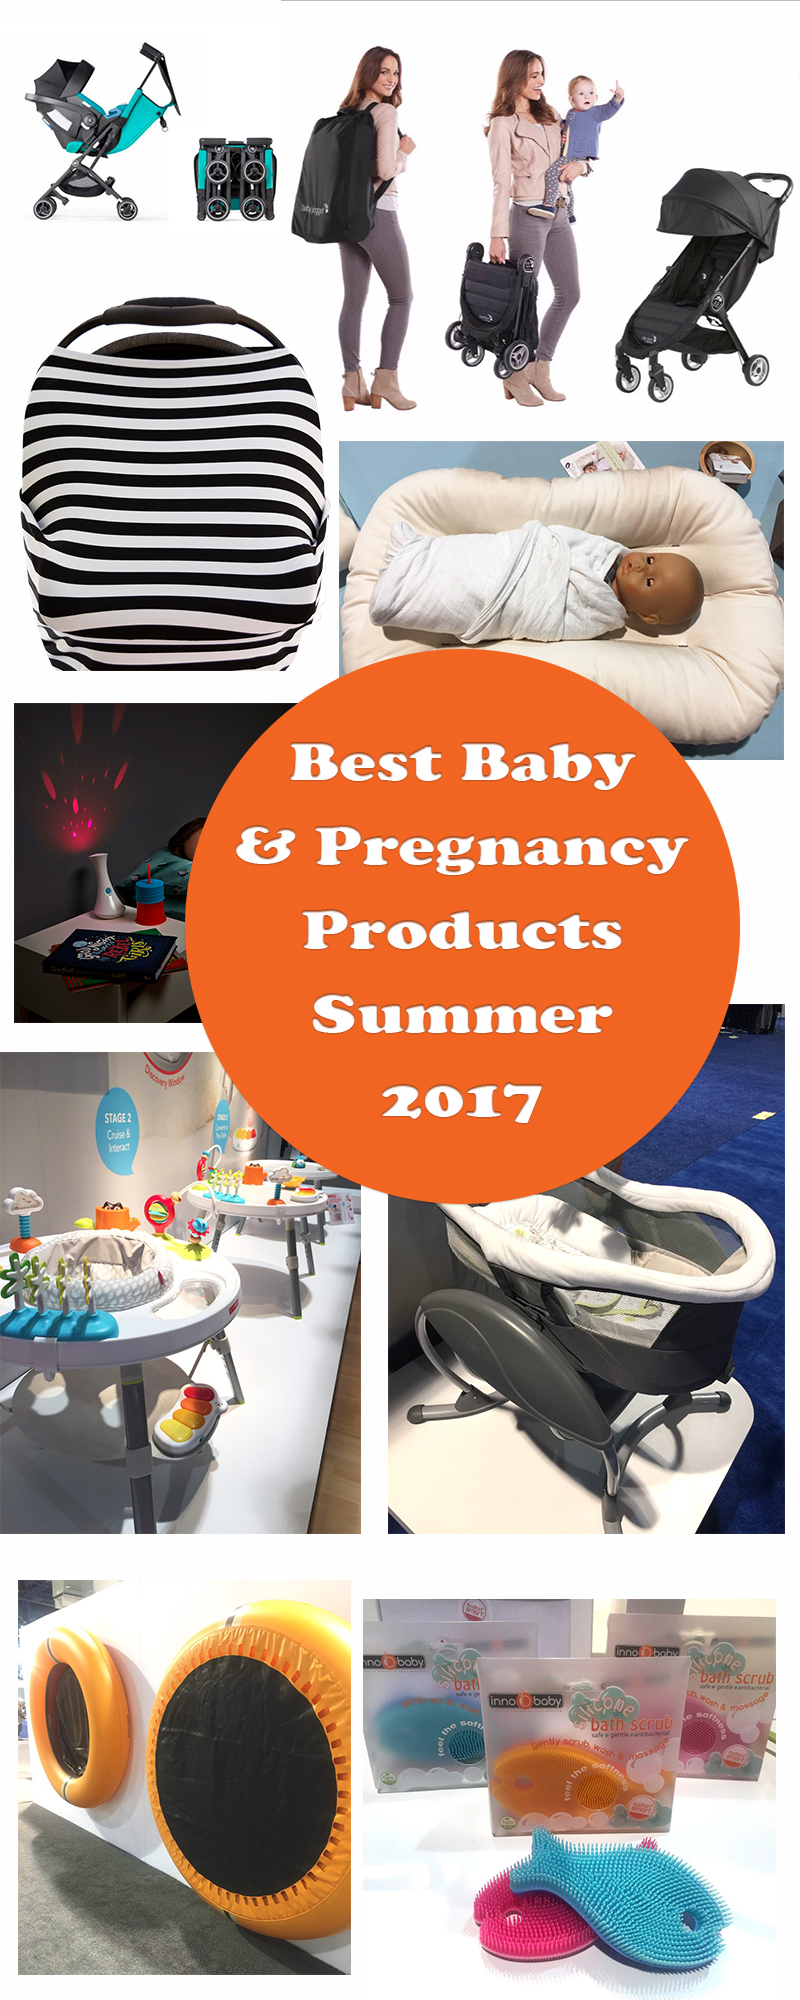 A sneak peek at the best baby and pregnancy products for summer 2017. From breastfeeding 'water wings' to super compact strollers some of this gear will blow your mind.